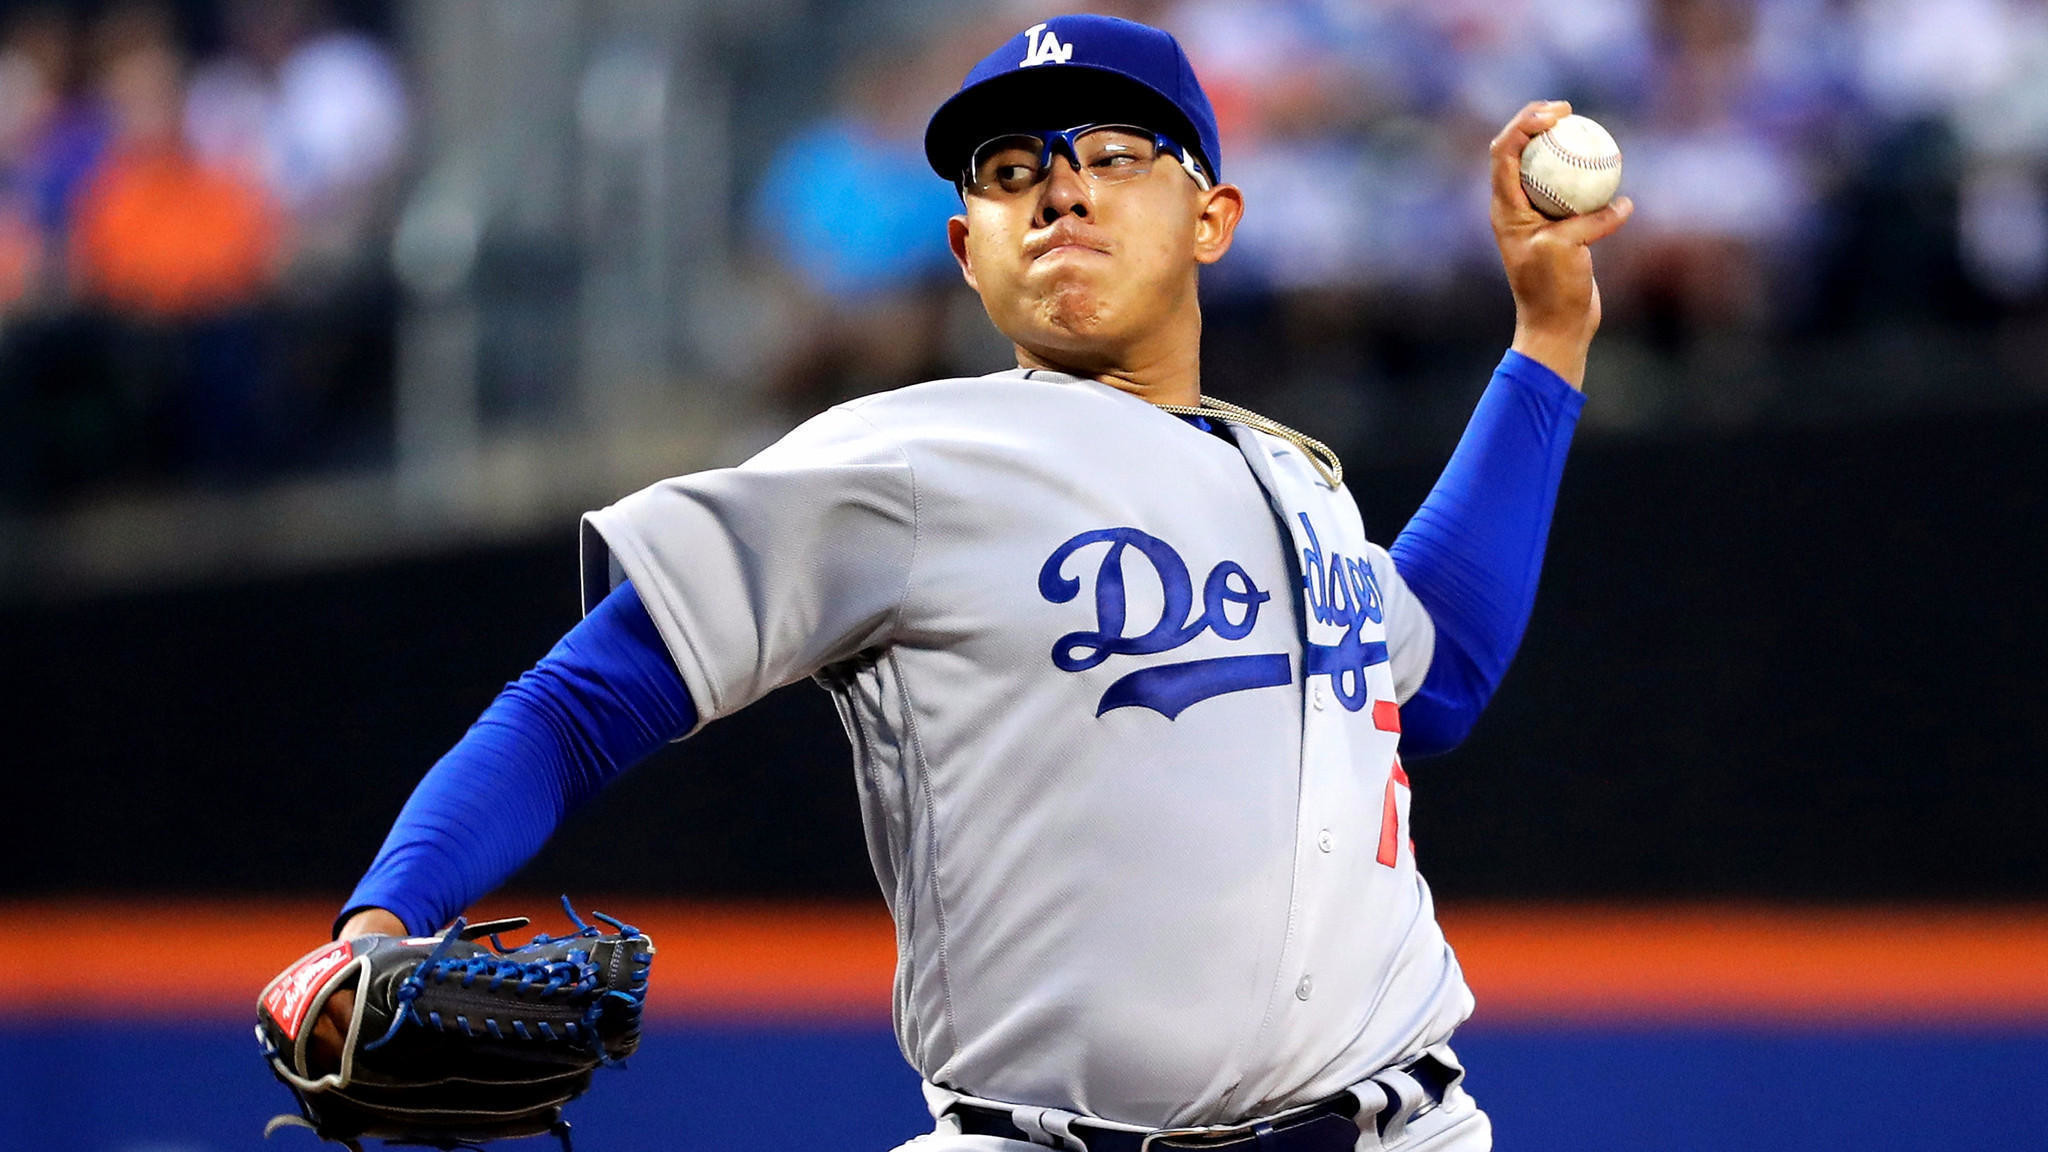 2048x1152 The first act of Julio Urias' career represented a significant challenge:  He debuted at Citi Field on Friday against a talented, disciplined New York  Mets ...